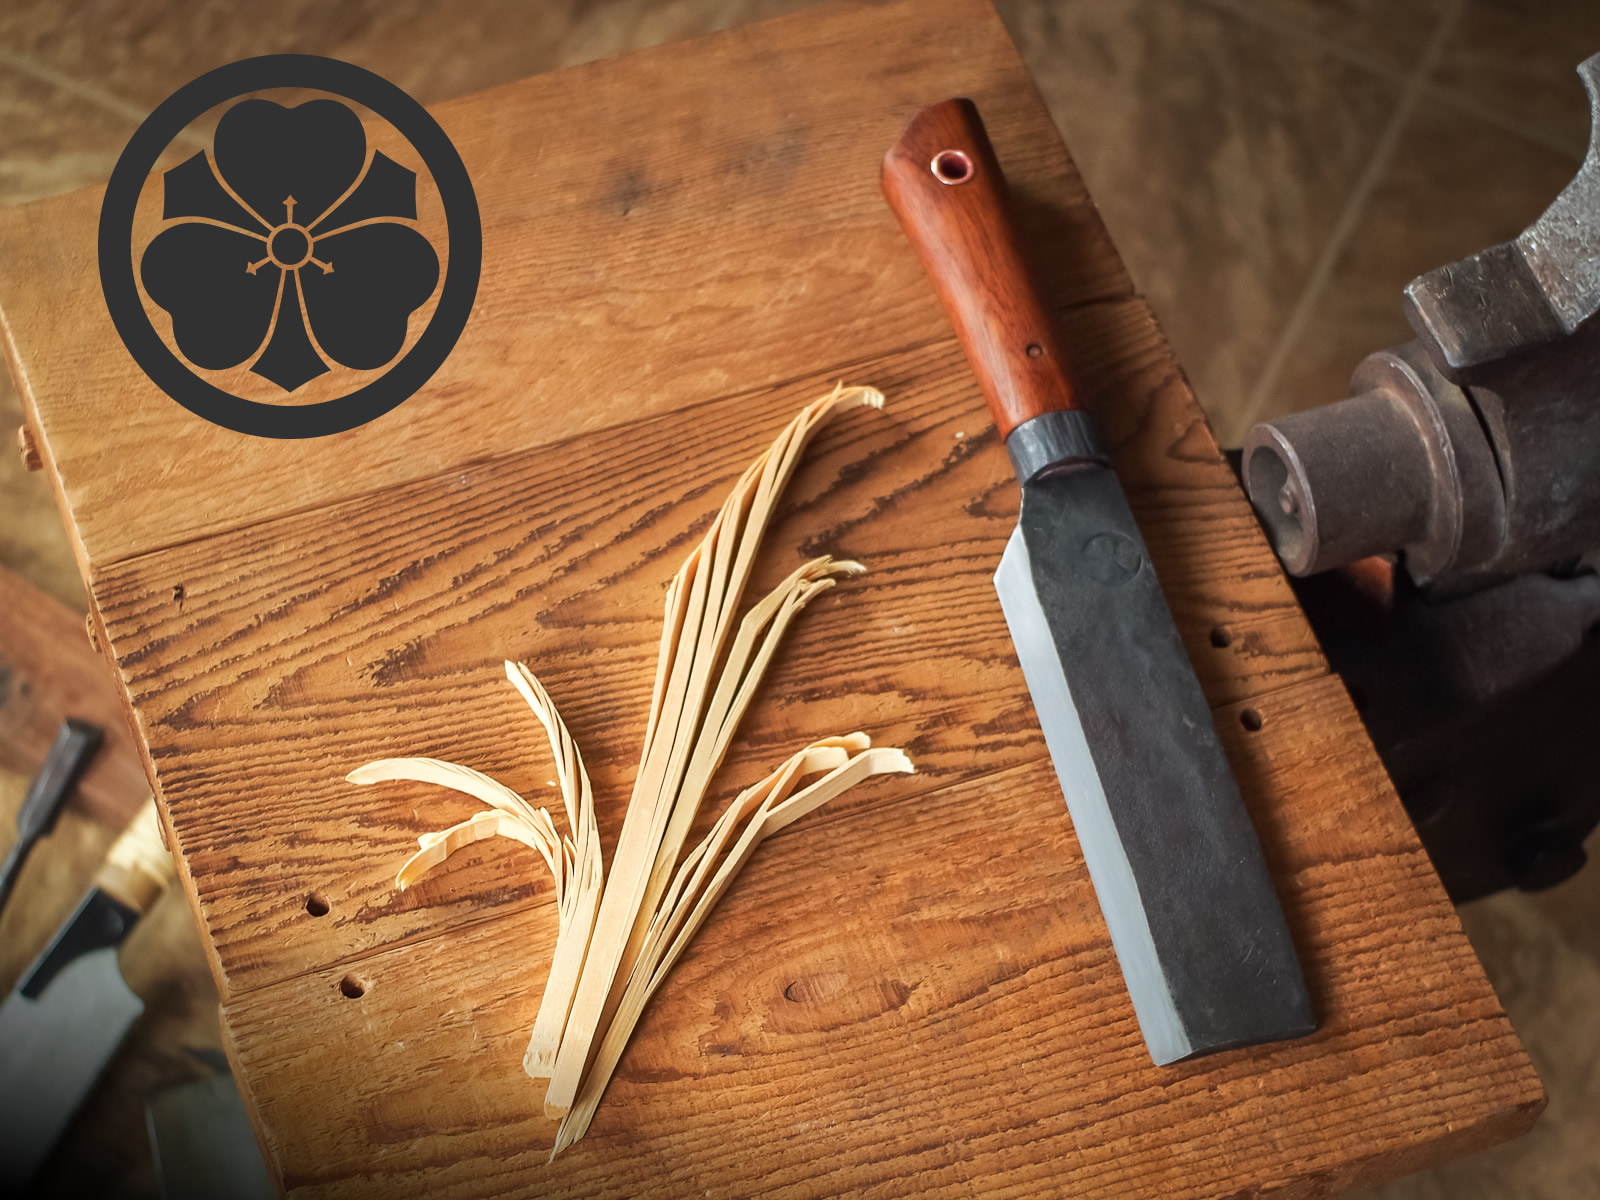 Island Blacksmith: Charcoal forged nihonto fusion knives made from reclaimed and natural materials using traditional techniques